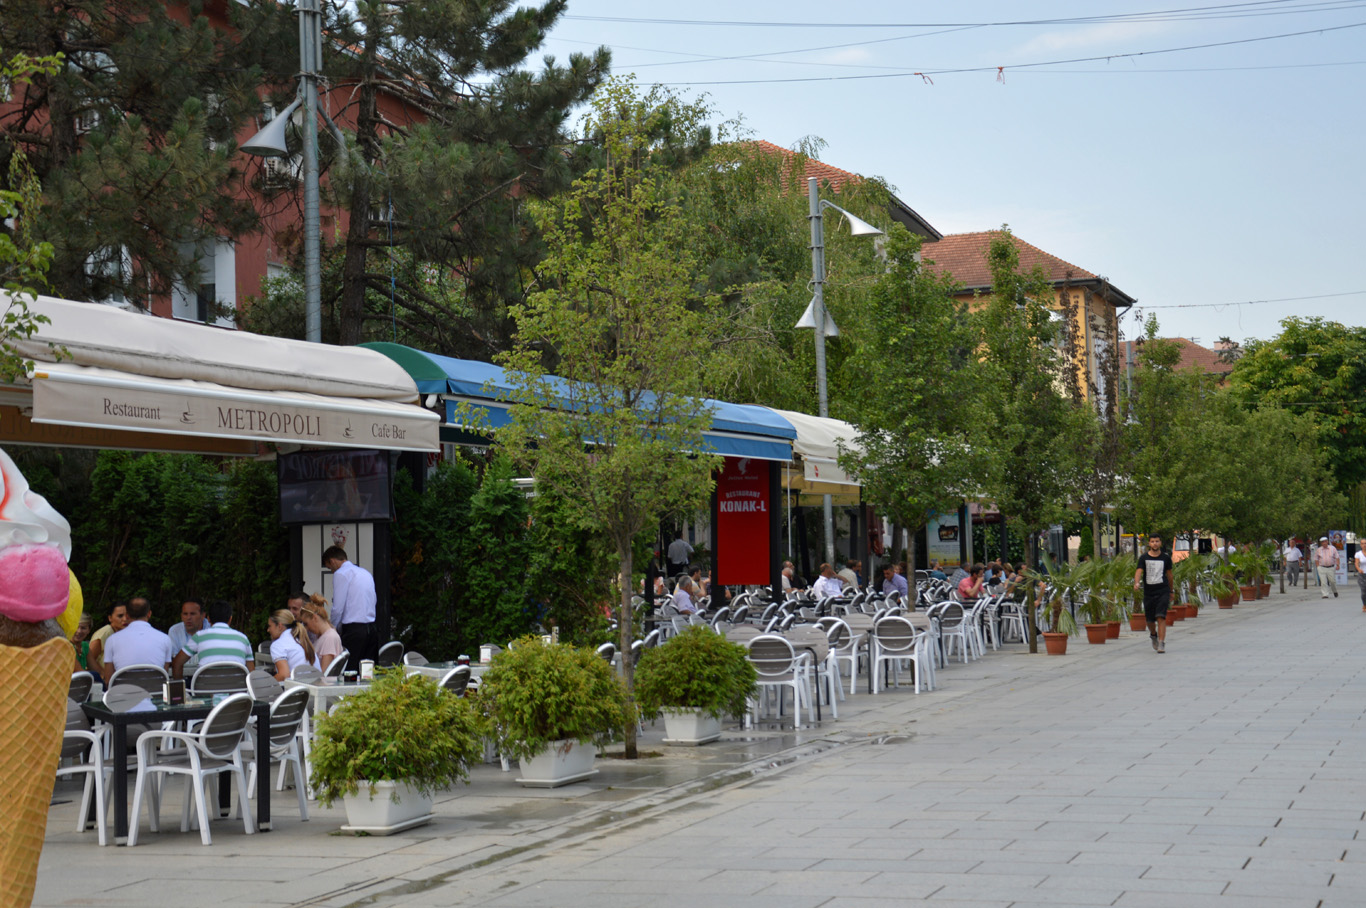 Cafes and restaurants - still quiet in the morning